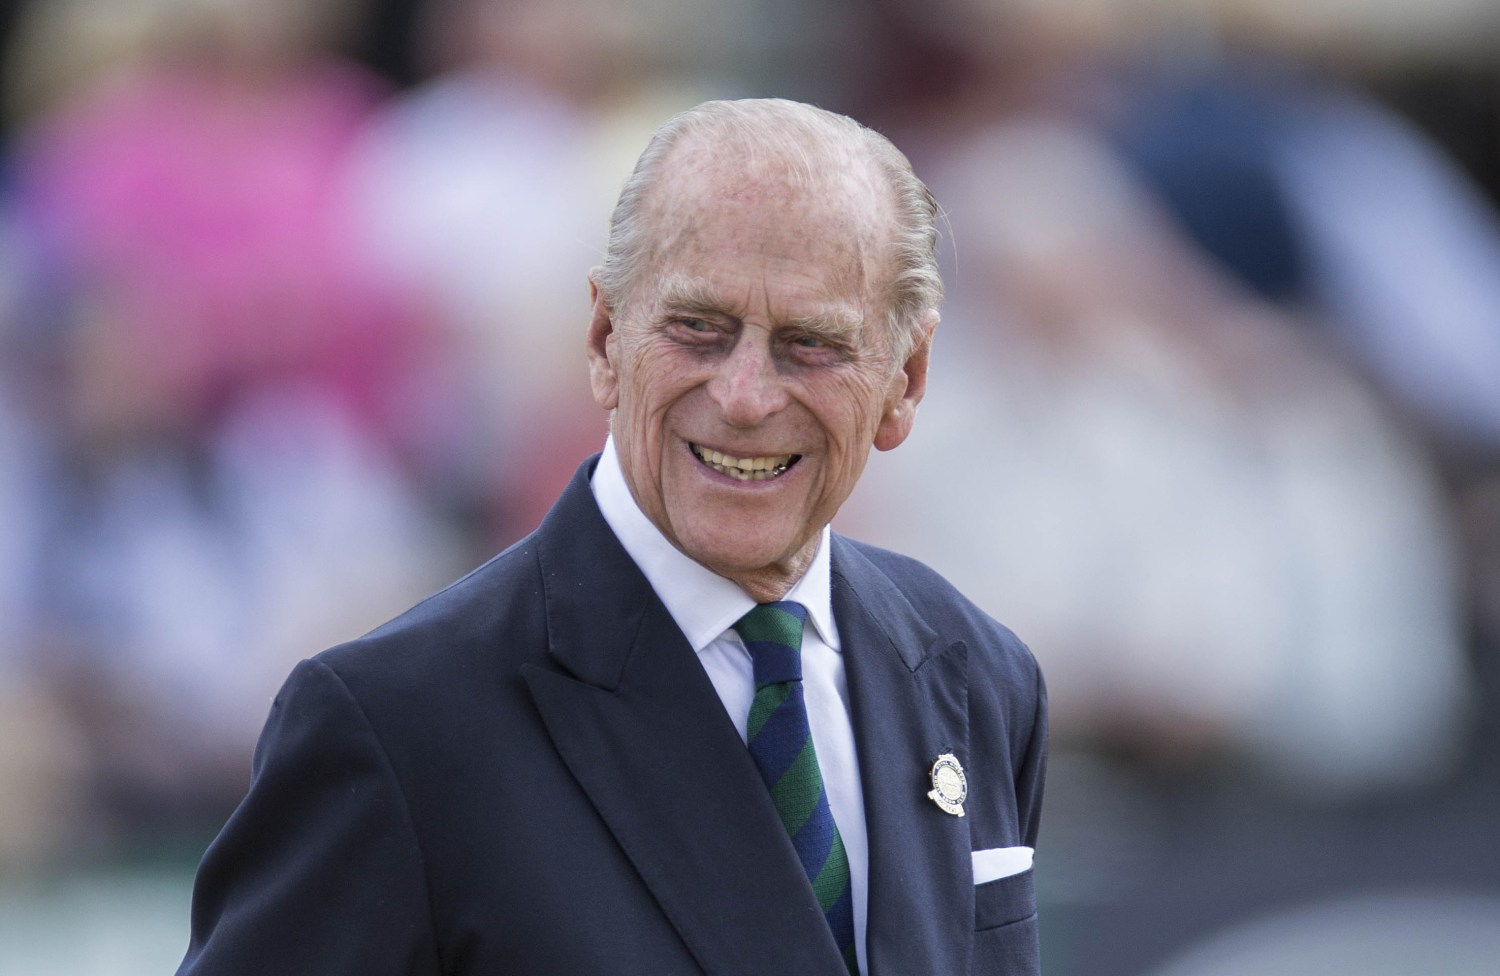 The Duke of Edinburgh's funeral will take place at Windsor, with 30 members of the Royal Family in attendance. Picture by i-Images